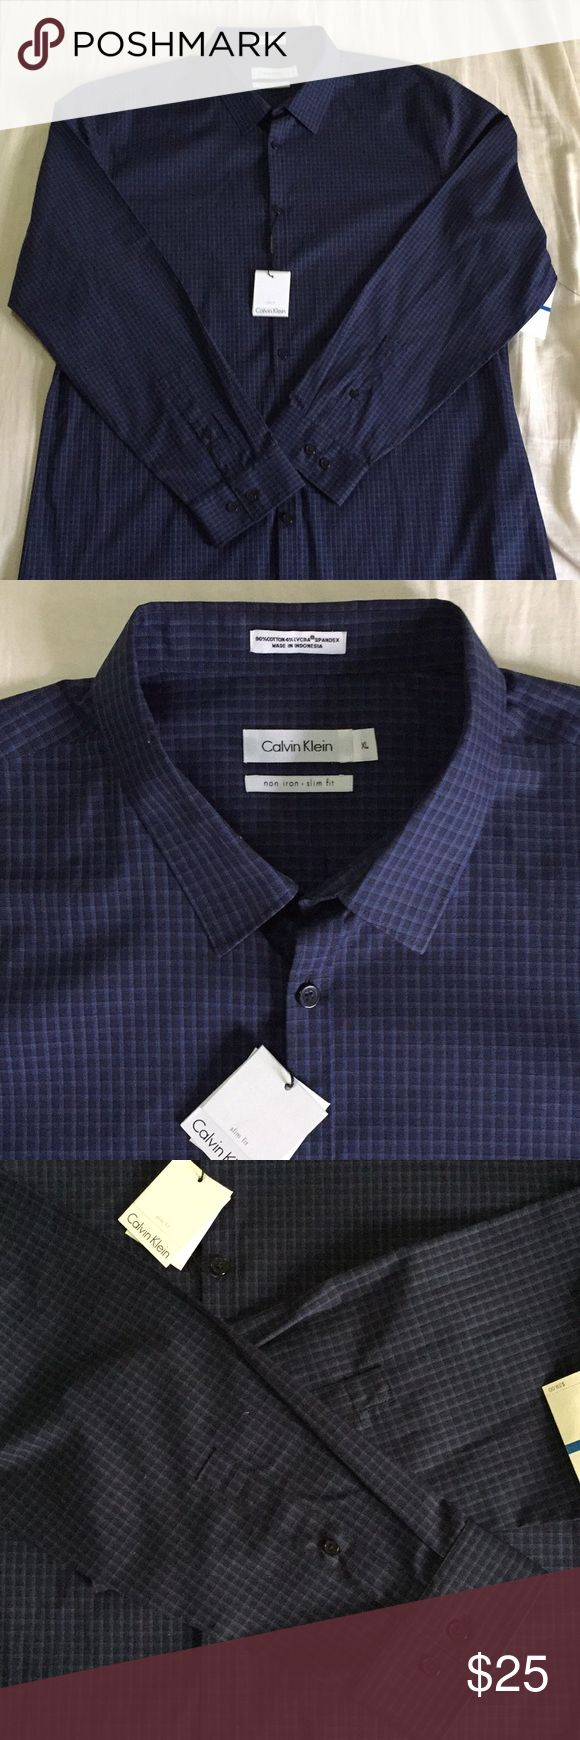 New Calvin Klein non iron dress shirt XL retail 58 Calvin Klein dress shirt size XL . Blue with black buttons, and a nice appealing design on the cotton material . Non iron shirt . Brand new retails $58.00 Calvin Klein Shirts Dress Shirts